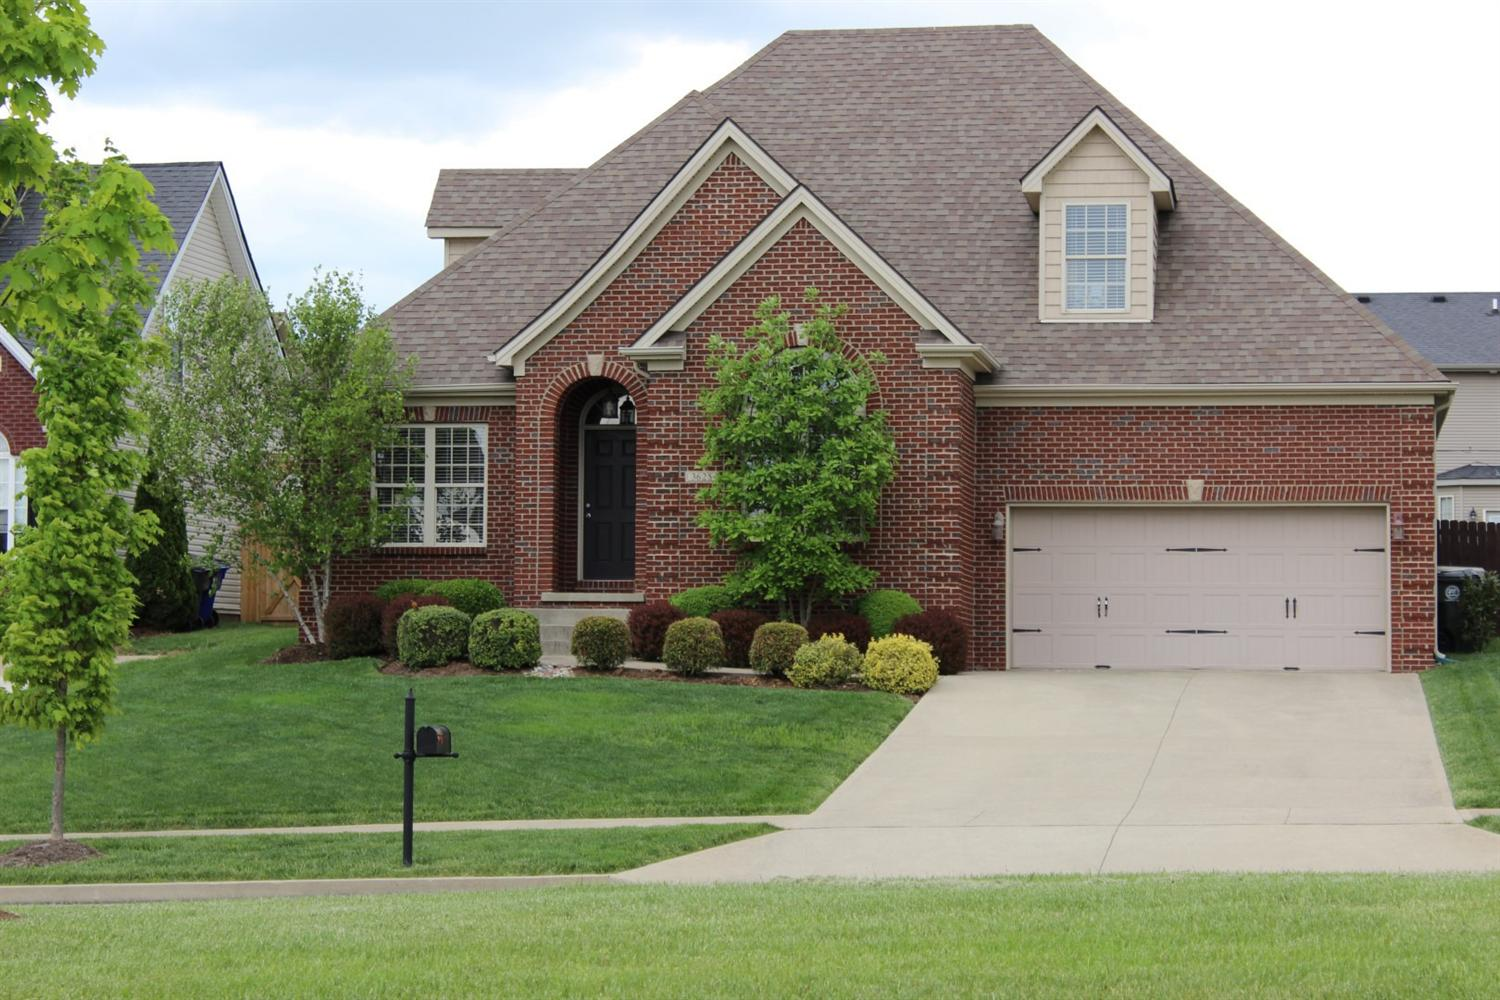 Real Estate for sale in Lexington KY